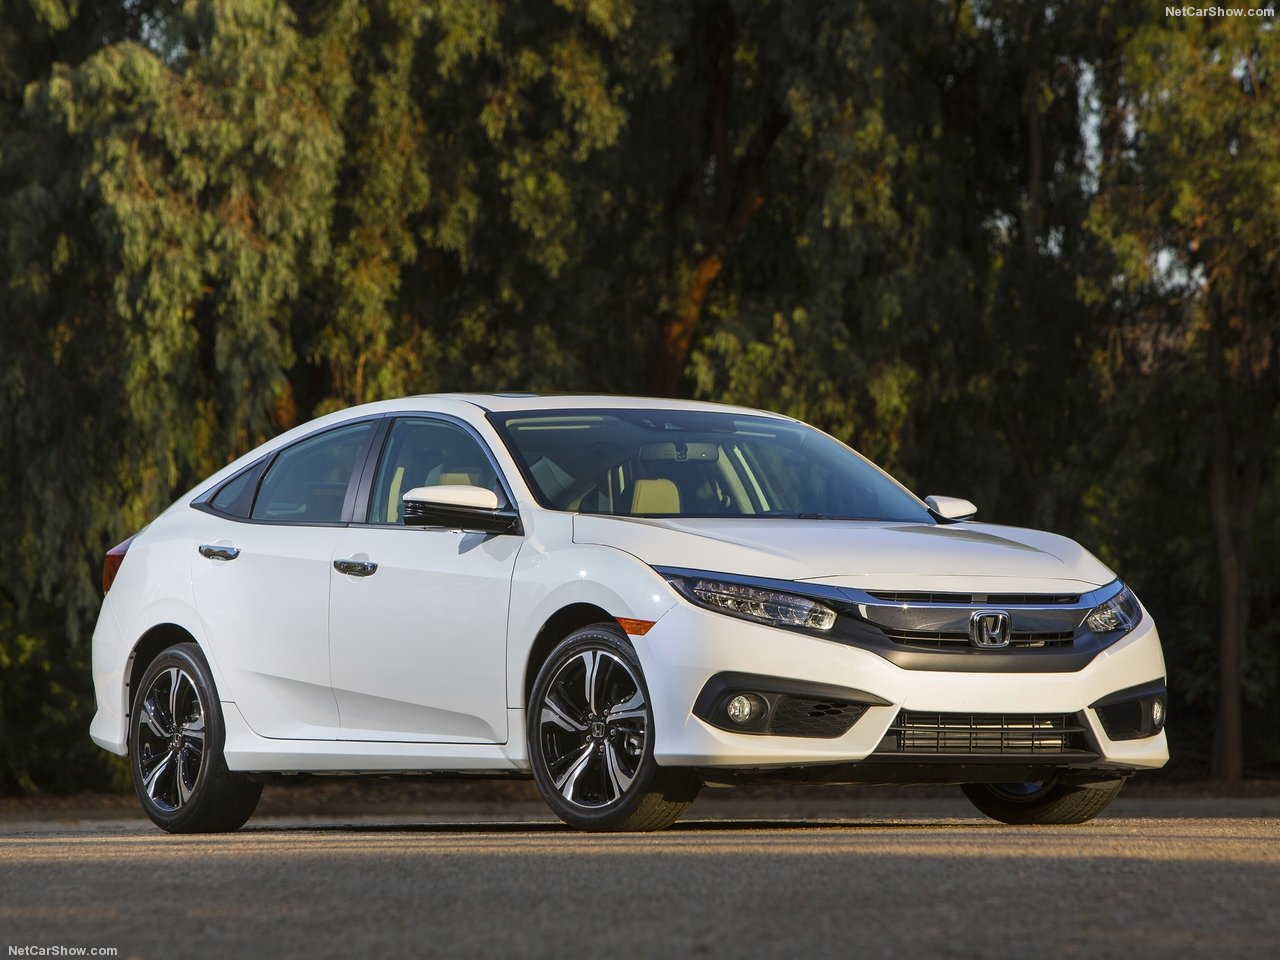 Honda-Civic_Sedan_2016_1280x960_wallpaper_06.jpg